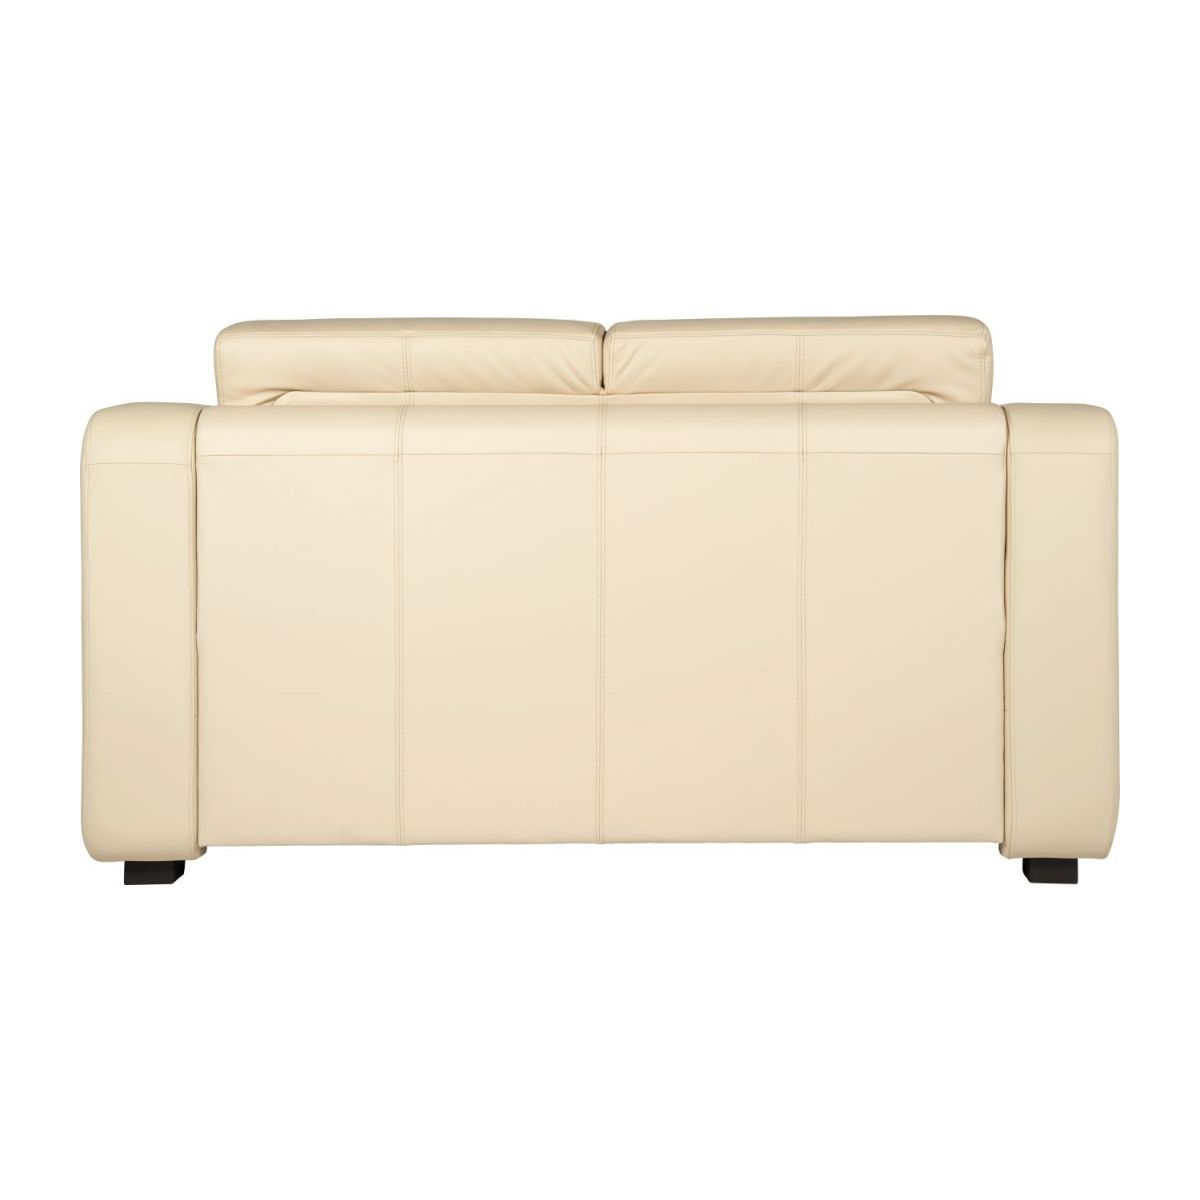 Leather sofa bed n°4